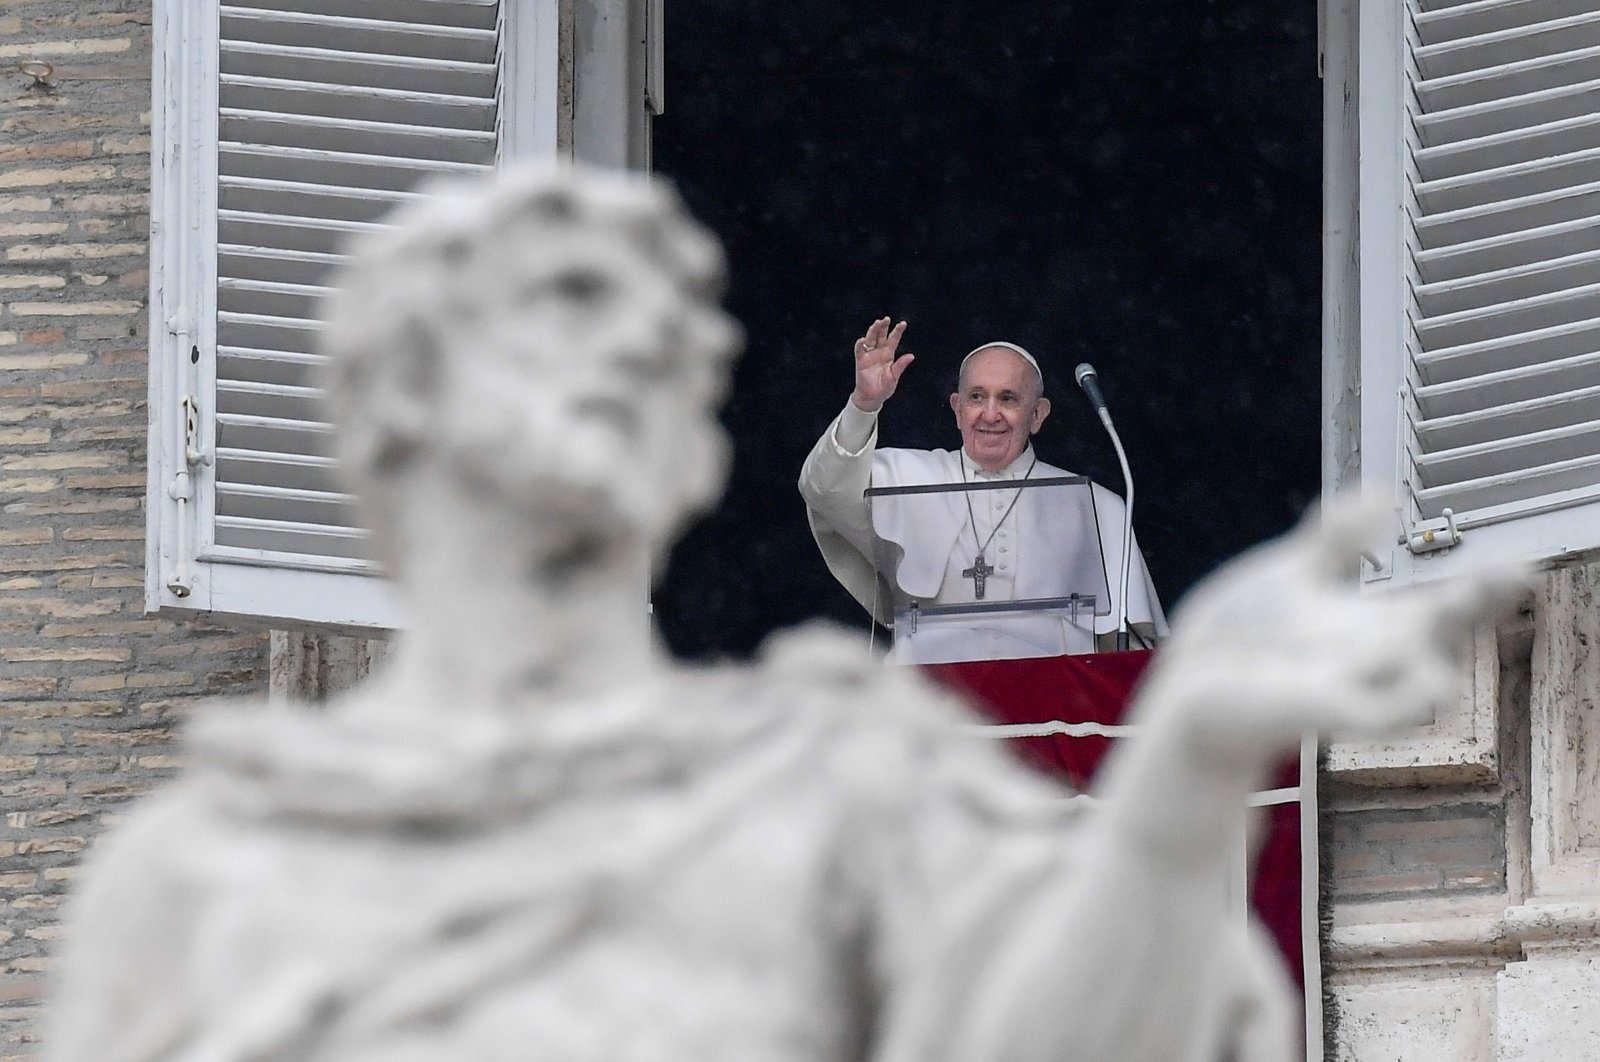 Pope Francis waves from the window of the Apostolic Palace overlooking St. Peter's Square during the weekly Angelus prayer on Feb. 7, 2021 in the Vatican (AFP)